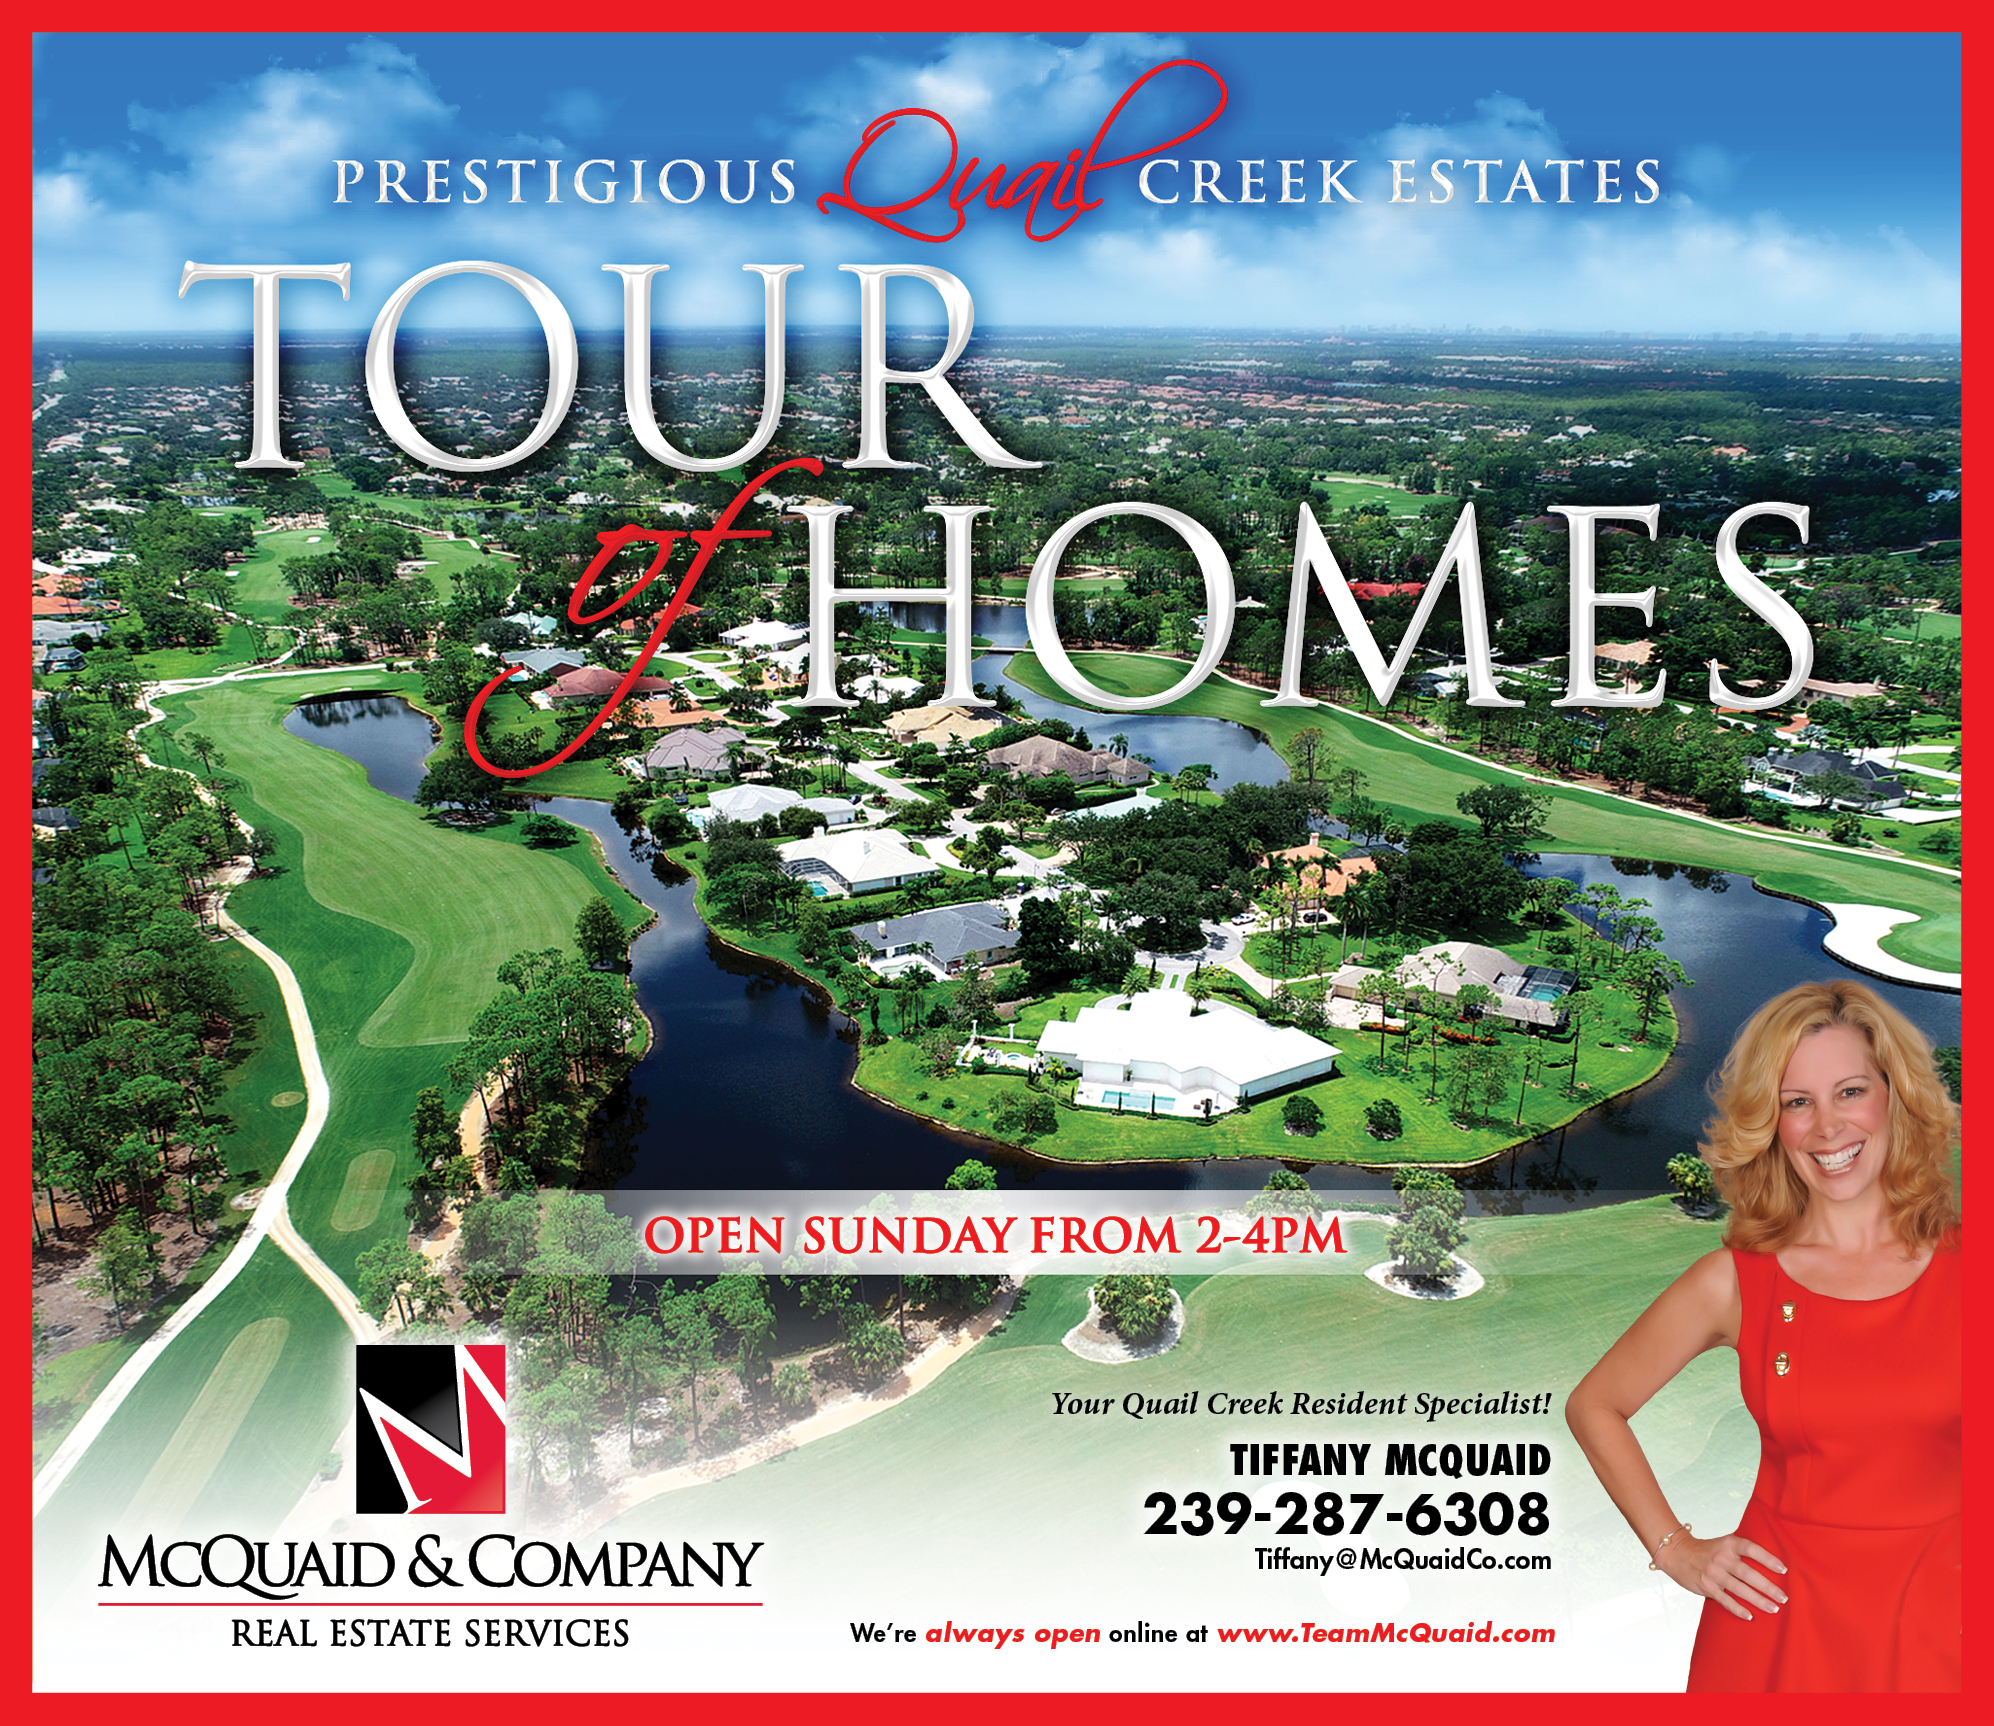 QUAIL CREEK ESTATES TOUR OF HOMES